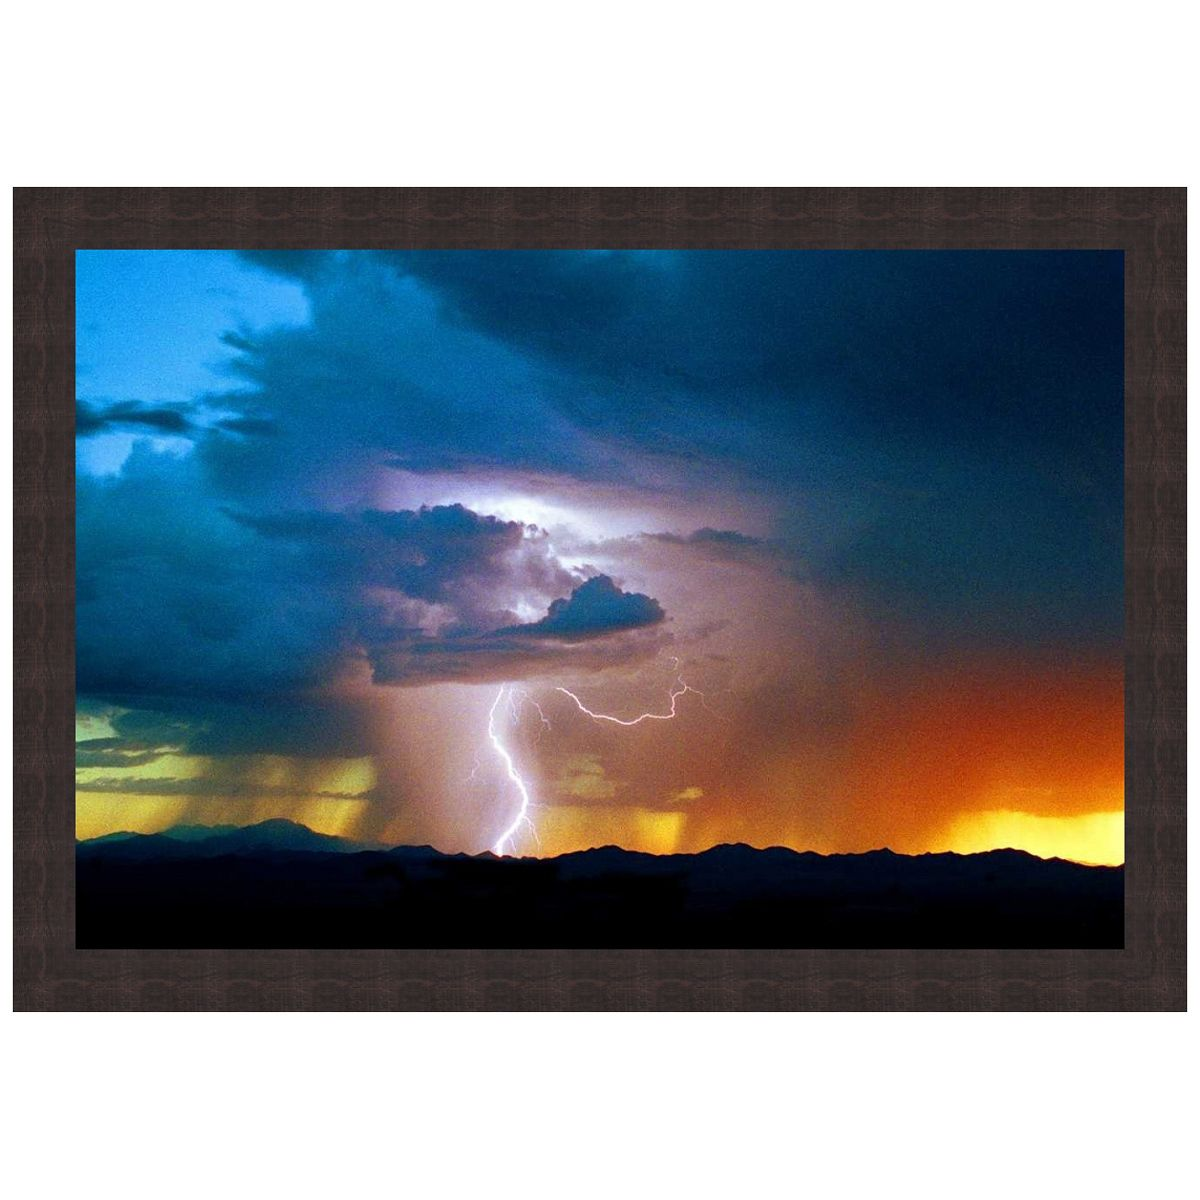 Thunderstorm Over the Foothills Framed Art